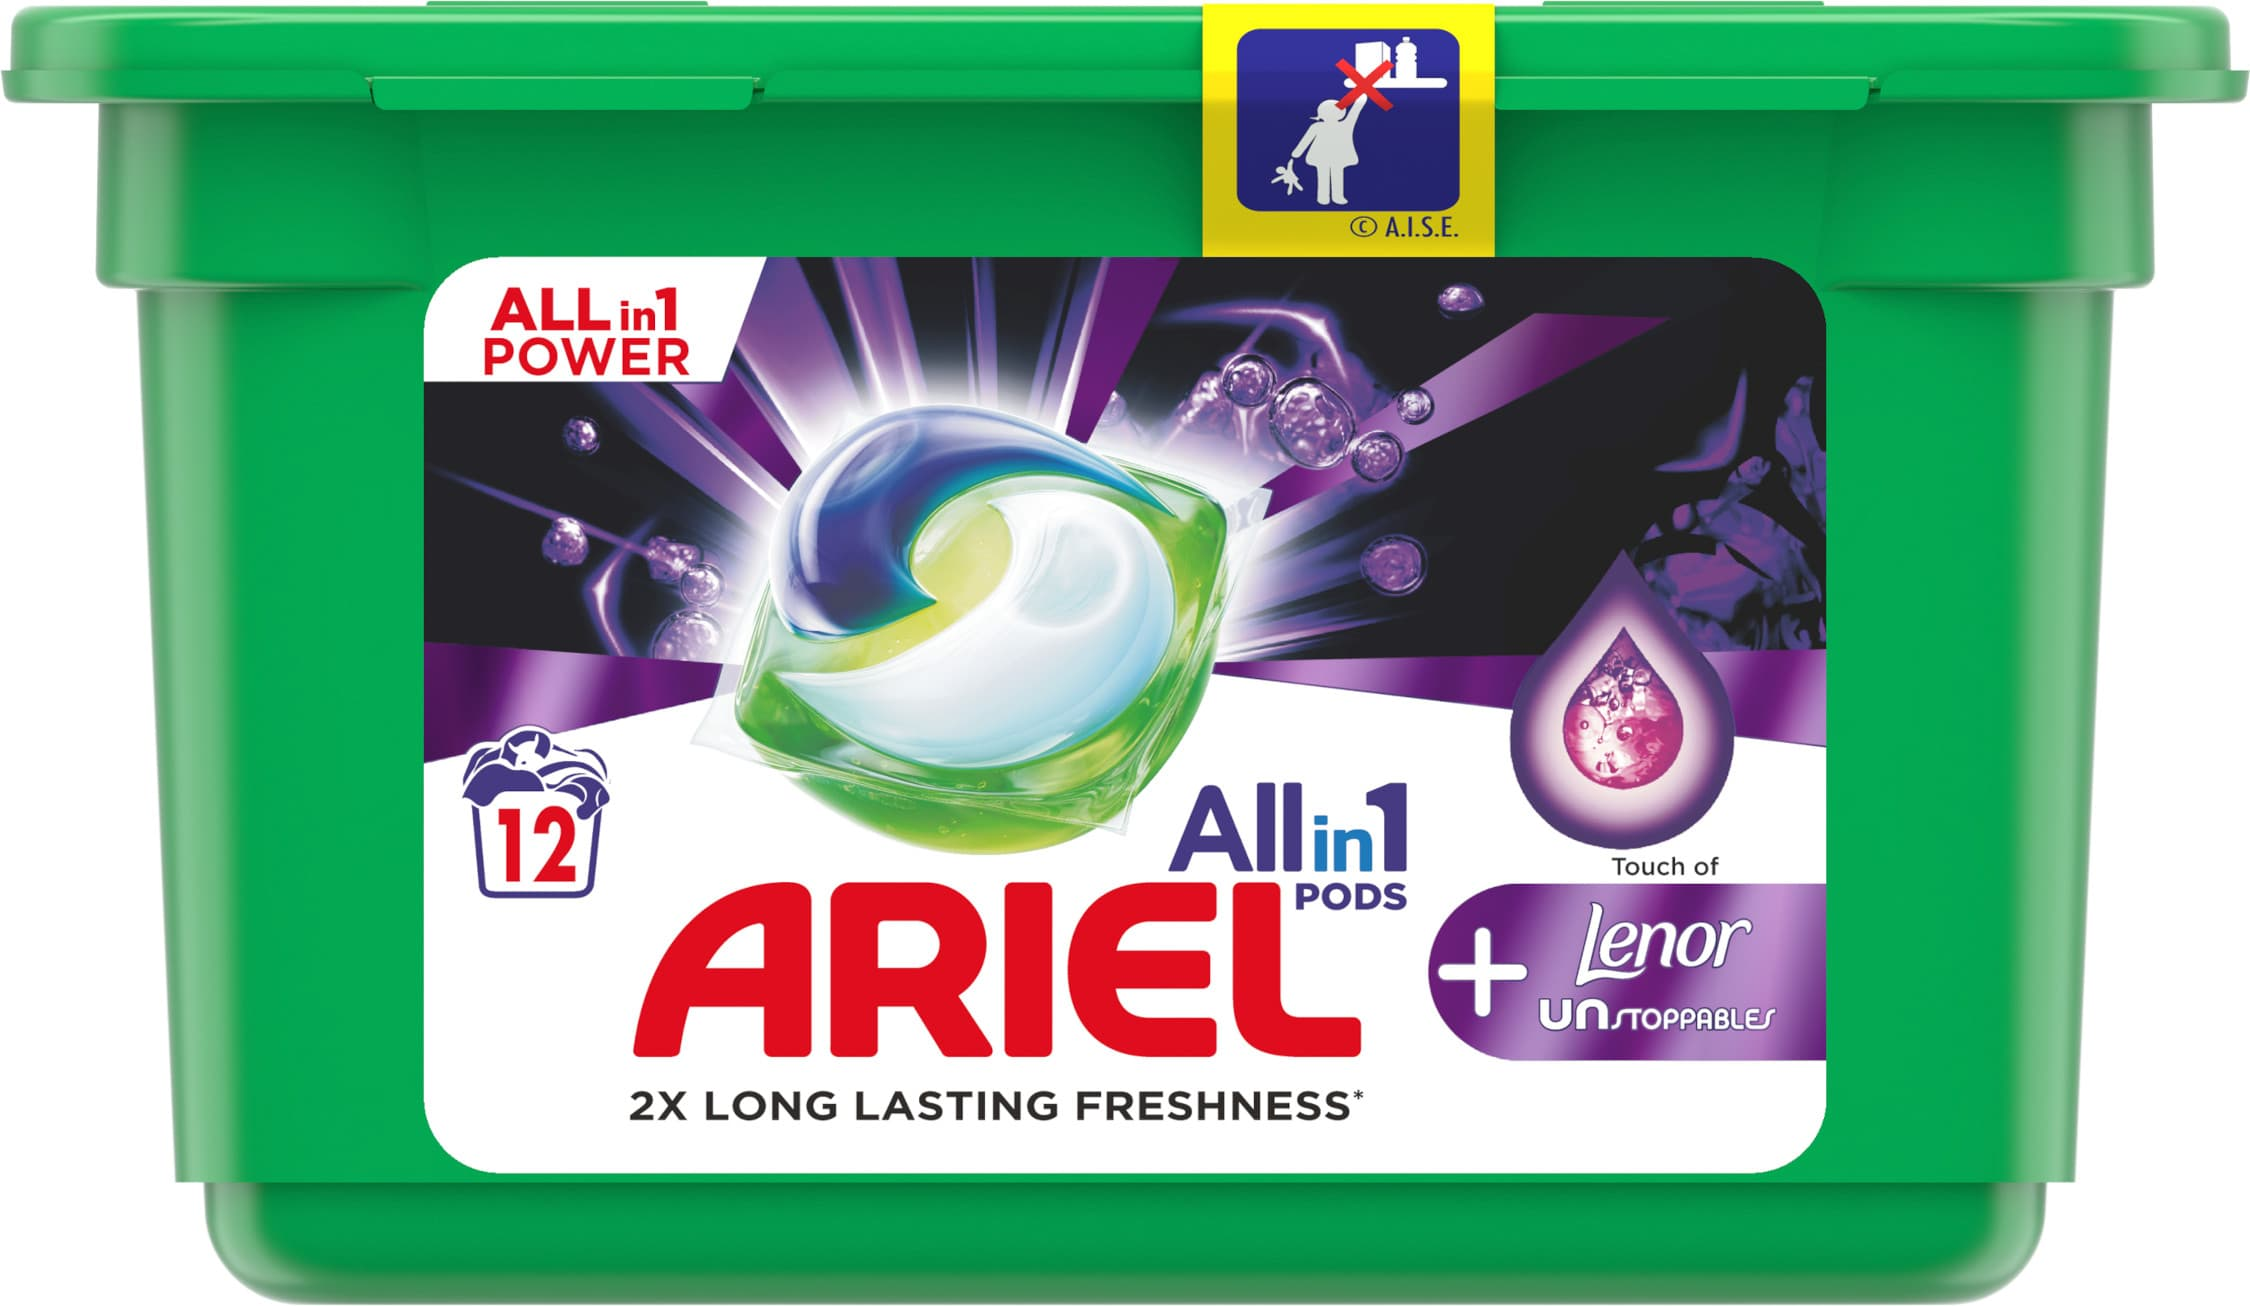 Ariel All-in-1 Touch of Lenor Unstoppables, Gelové tablety 12ks